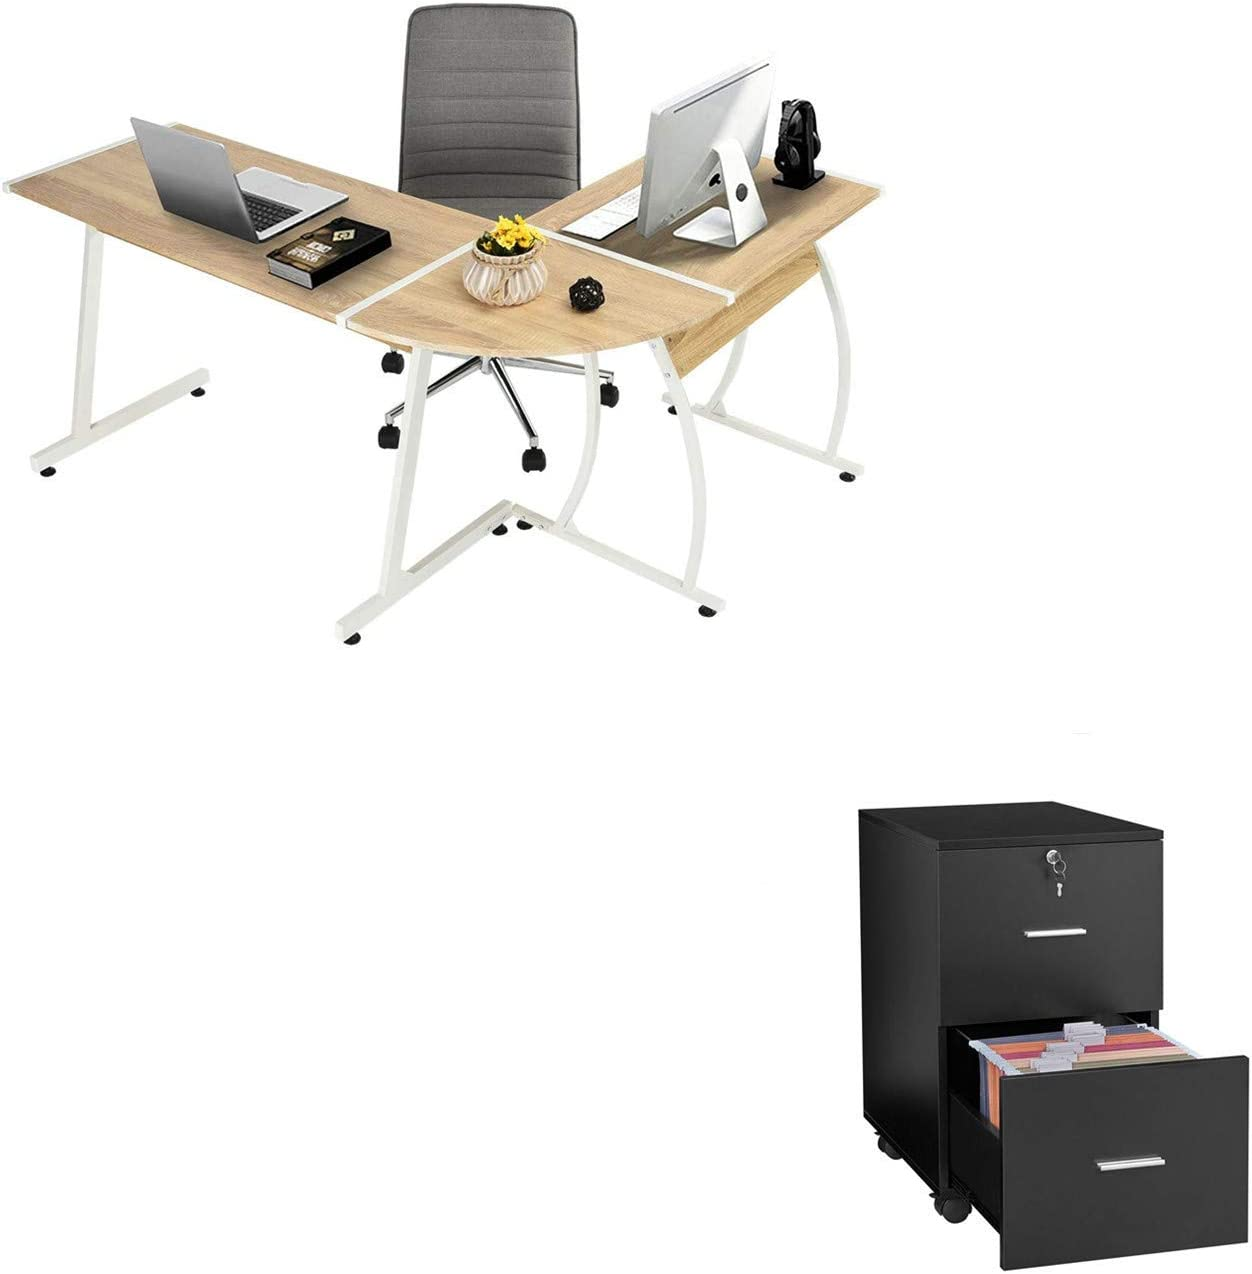 GreenForest L-Shaped 58.1'' Oak Gaming Computer Desk 3-Piece PC Laptop Table Writing Studying Working Workstation and 2 Drawer Black Wooden Vertical File Cabinet with Lock and Wheels